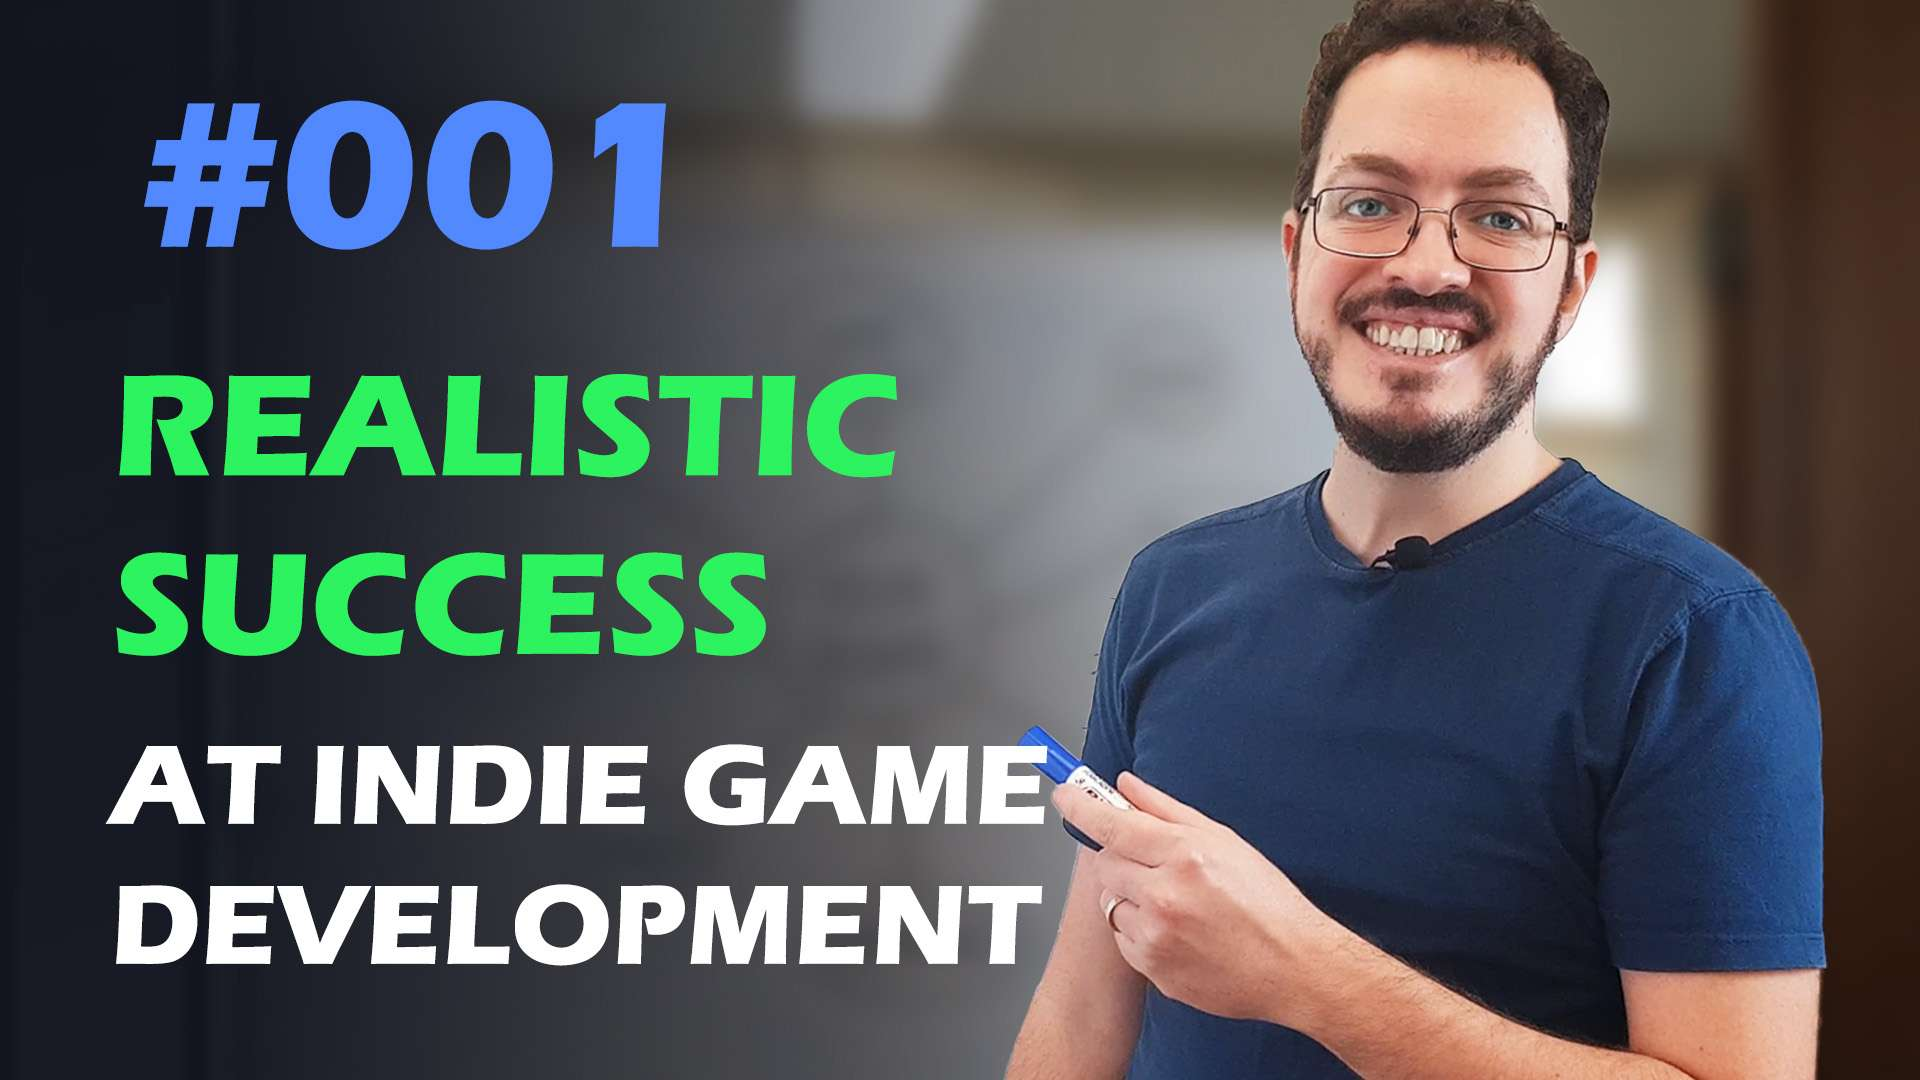 Realistic success at indie game development